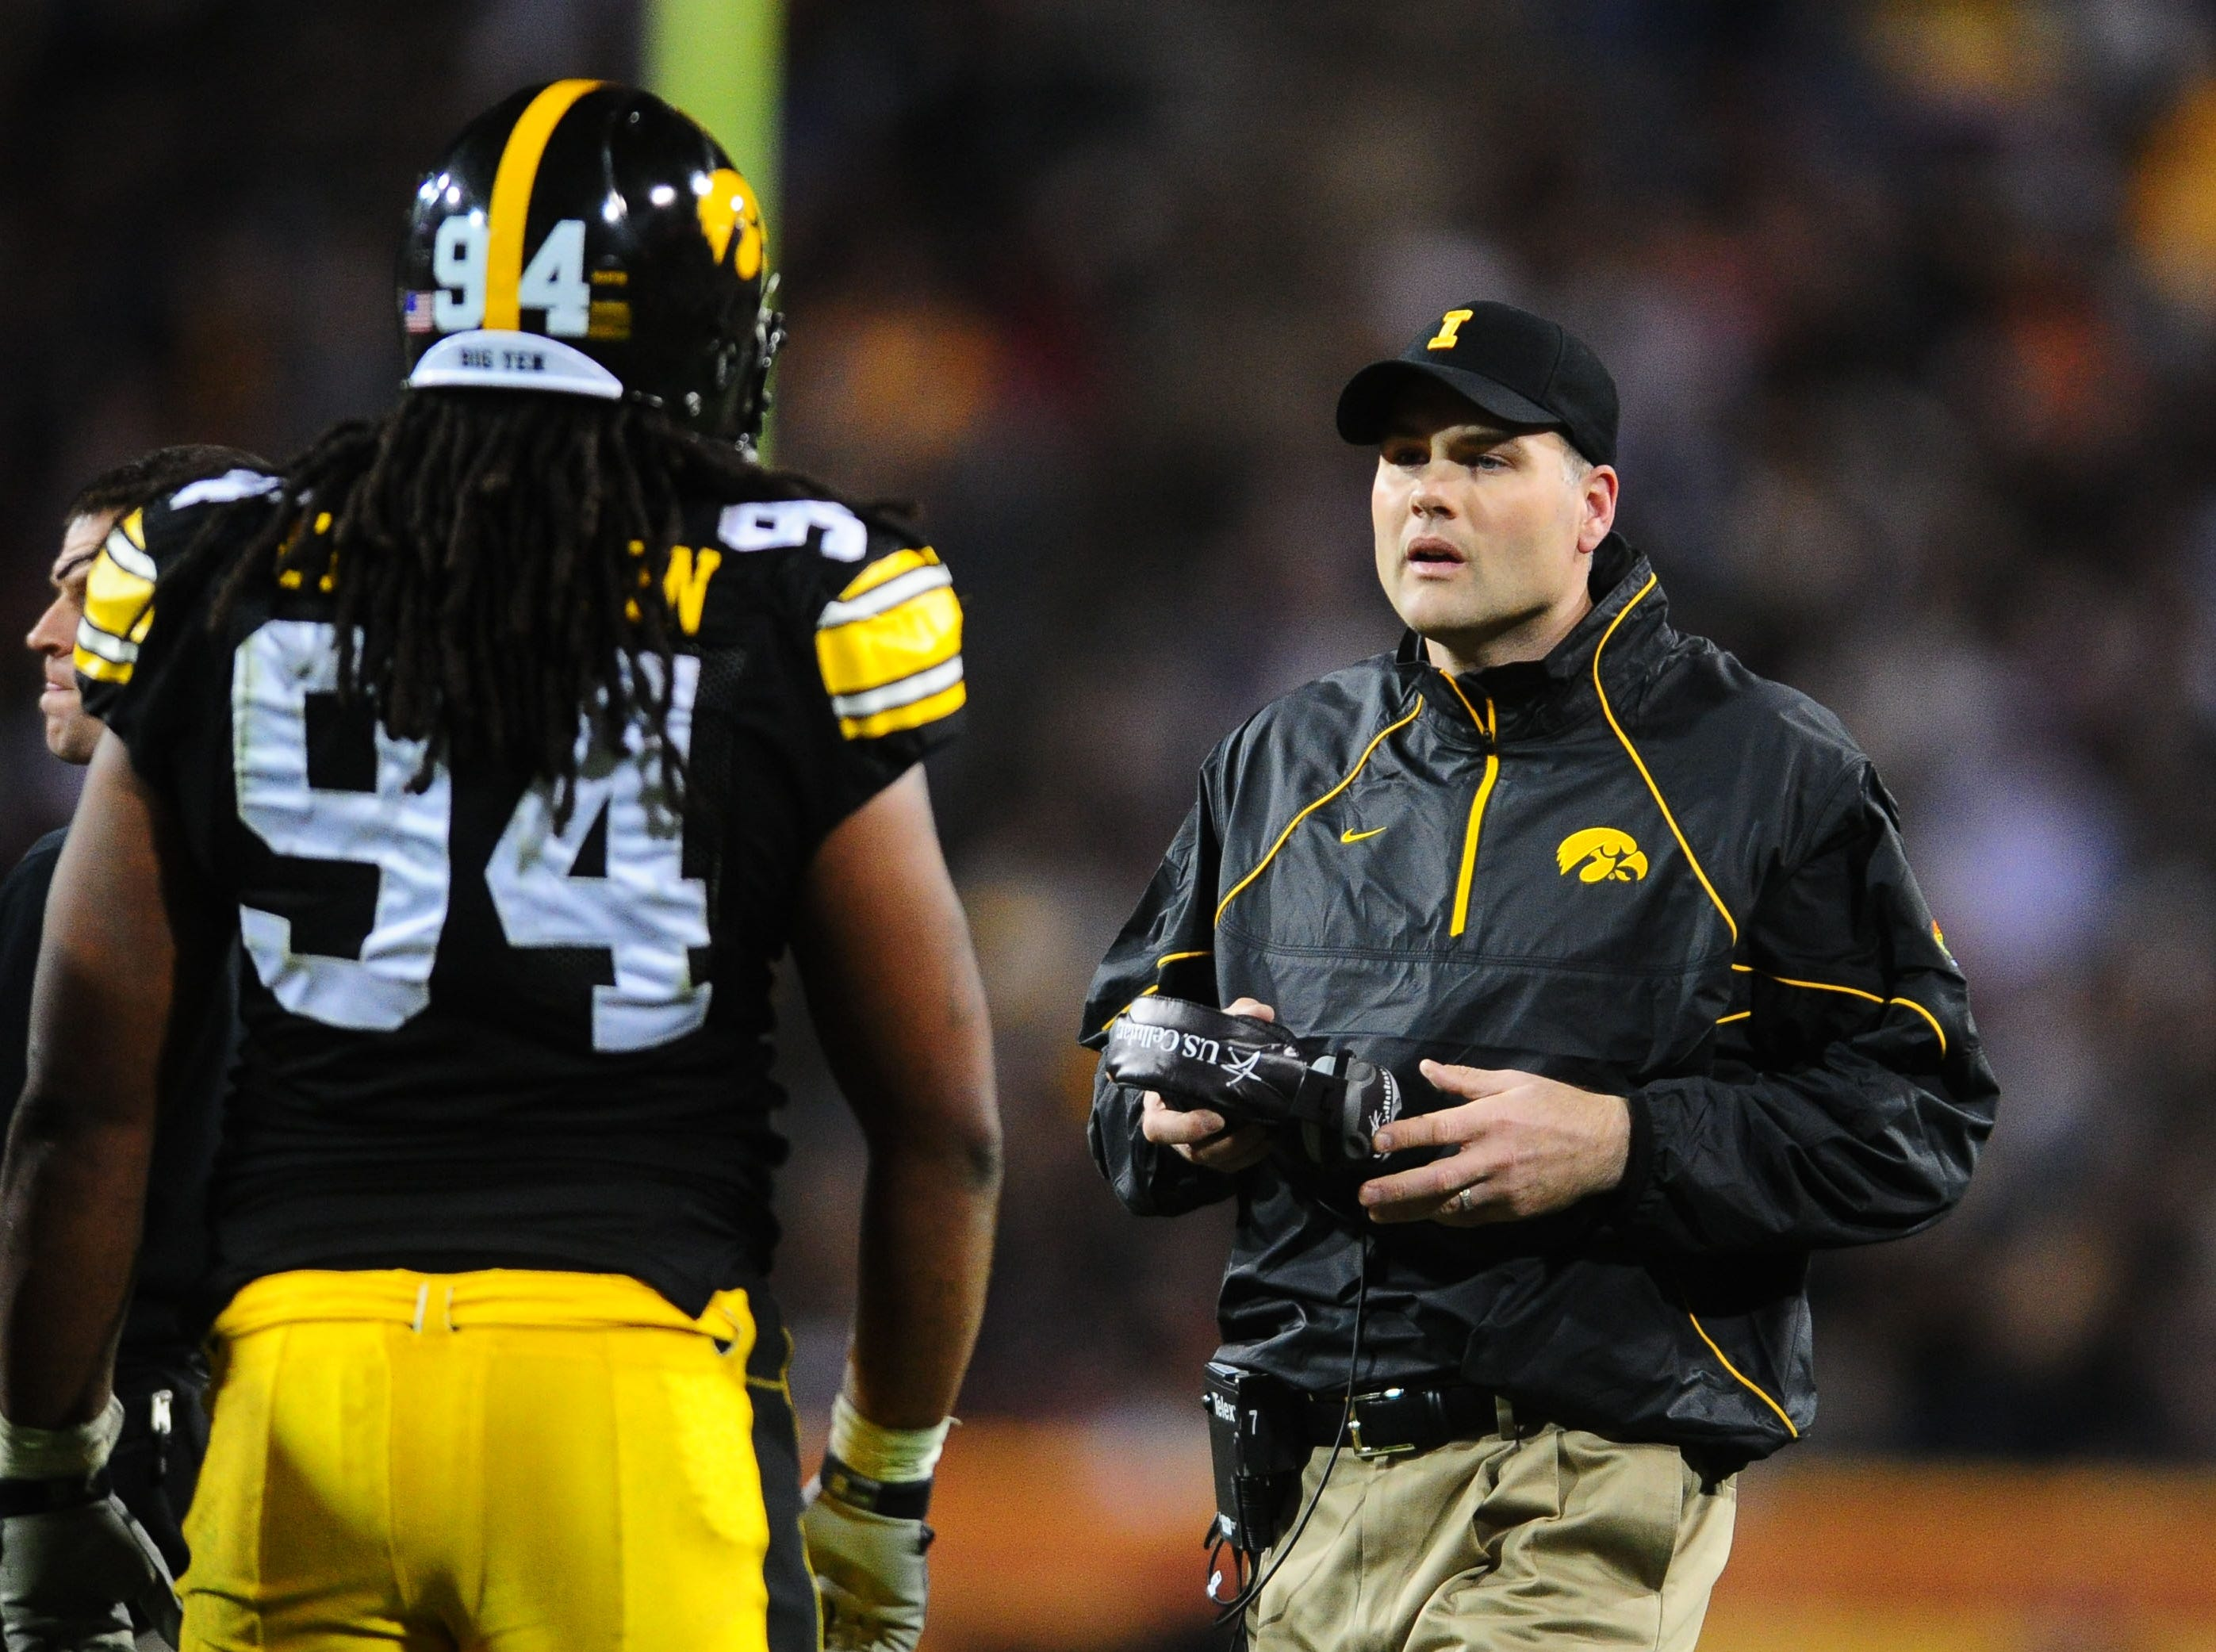 Dec. 28, 2010; Tempe, AZ, USA; Iowa Hawkeyes defensive line coach Rick Kaczenski against the Missouri Tigers in the 2010 Insight Bowl at Sun Devil Stadium. Iowa defeated Missouri 27-24. Mandatory Credit: Mark J. Rebilas-USA TODAY Sports